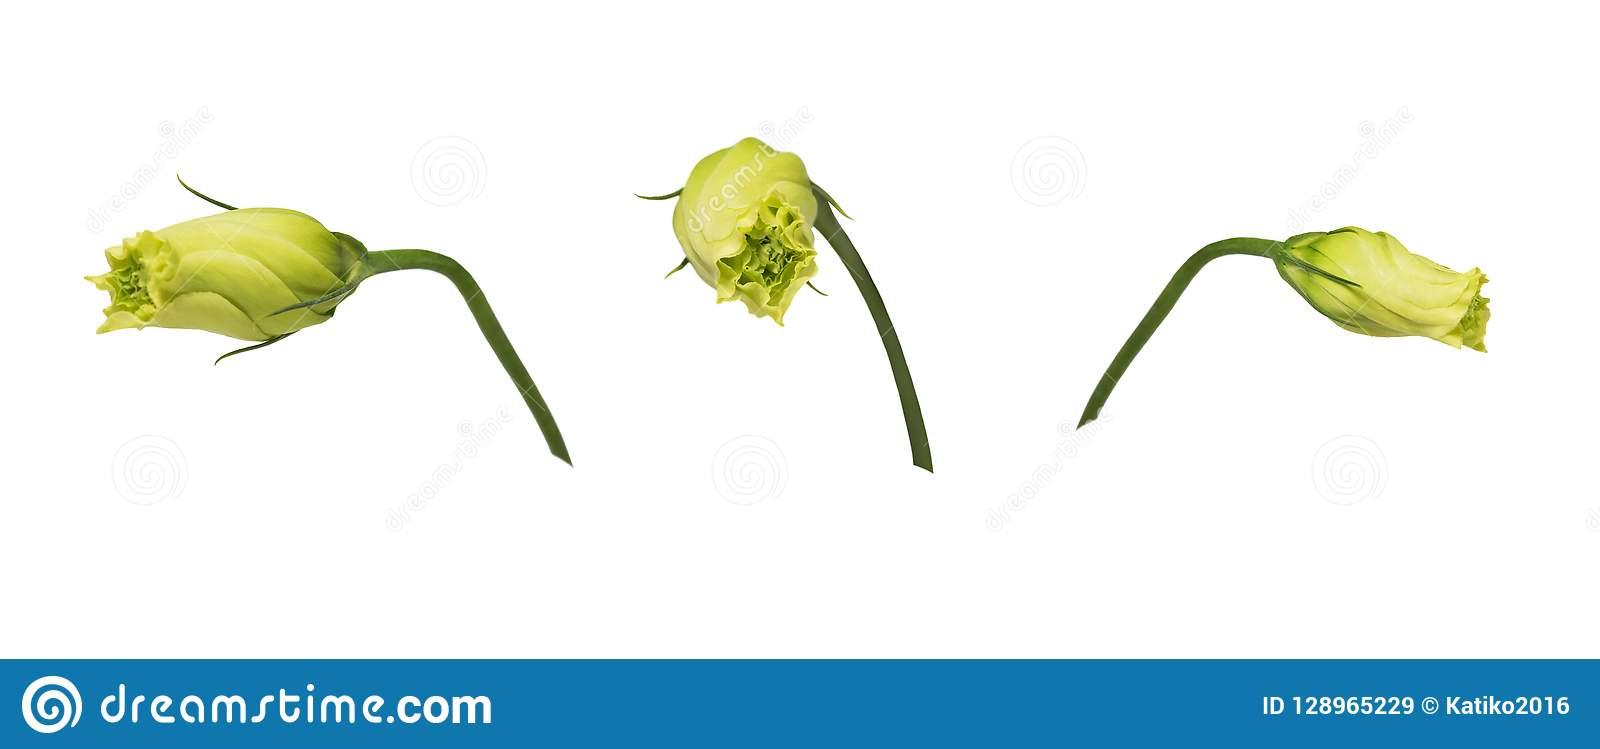 Closed yellow eustoma buds prairie gentian isolated on white background. Set of images.